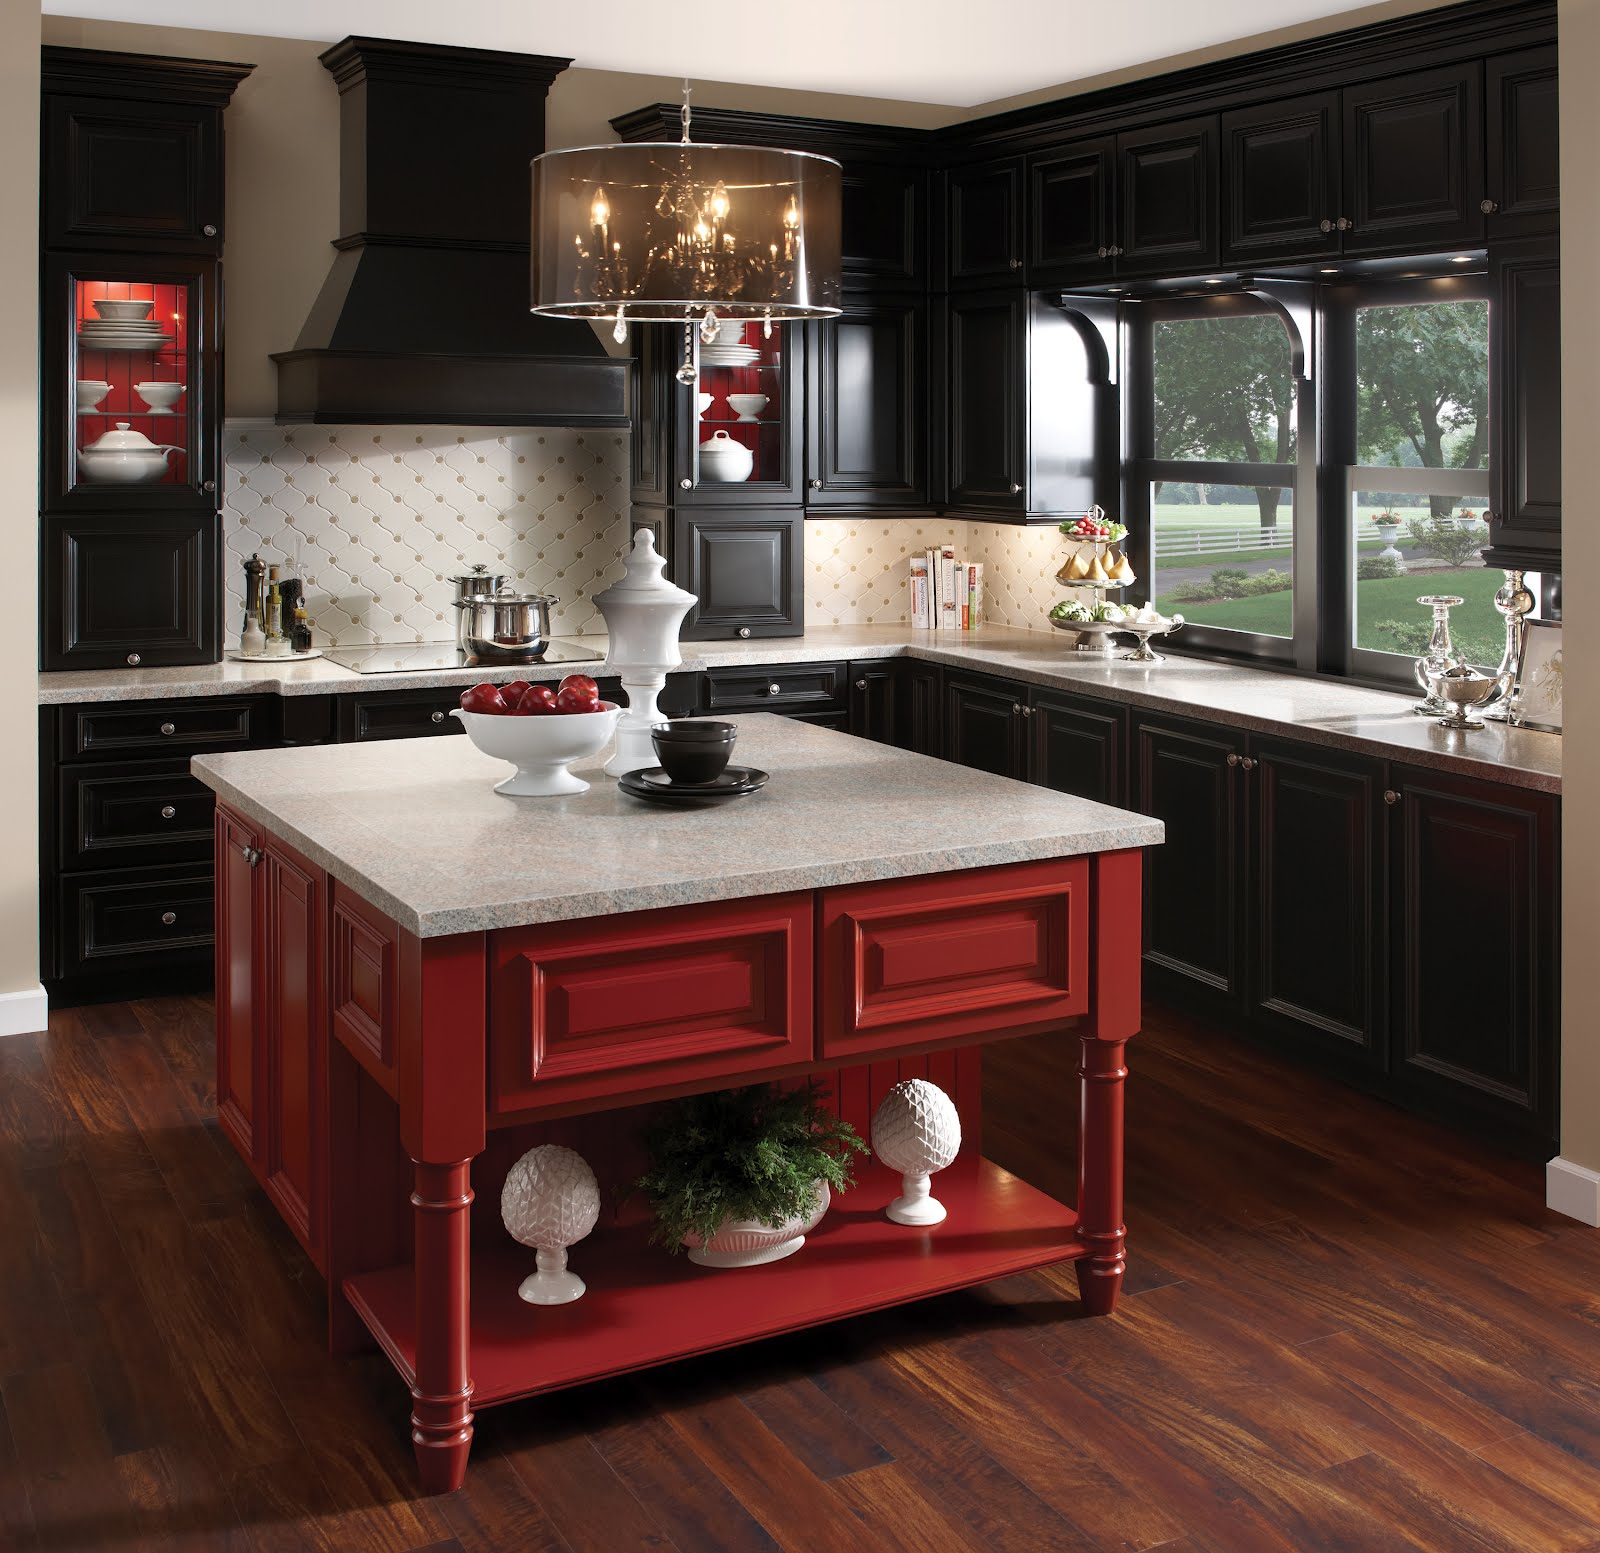 Kitchen Cabinet Colors 2012 Gold Notes 2012 Trends Post Cabinetry Guest Post By Sarah Reep